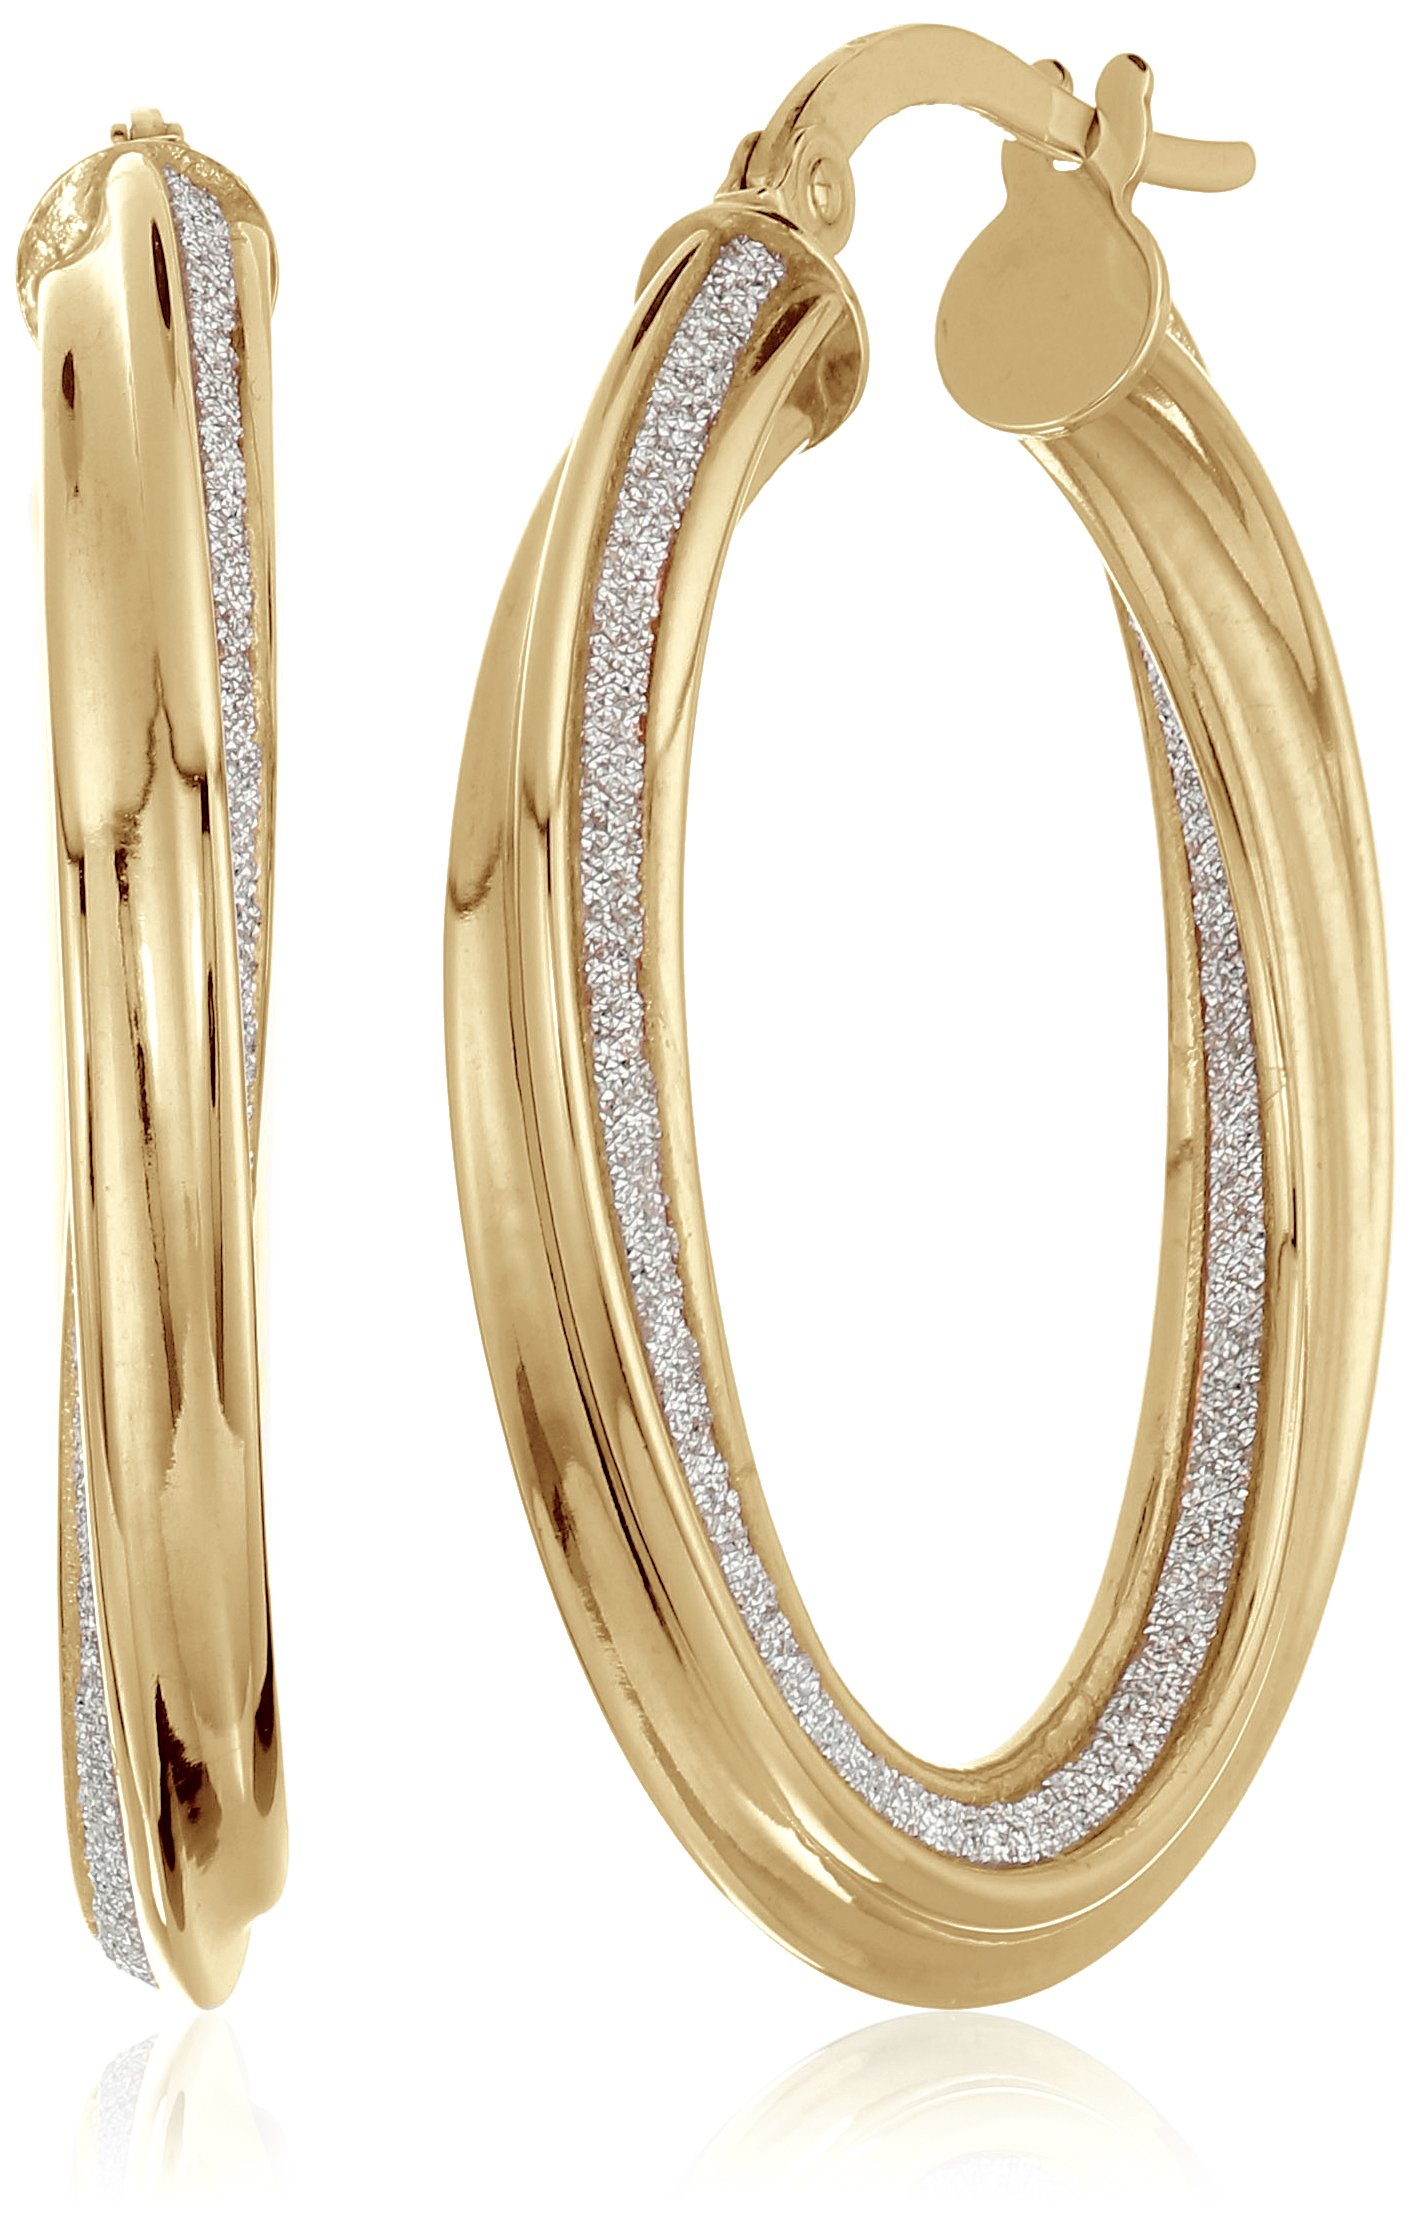 14k Yellow Gold Italian 20 mm Twisted Tube Hoop Earrings with Pave Style Glitter Hoop Earrings